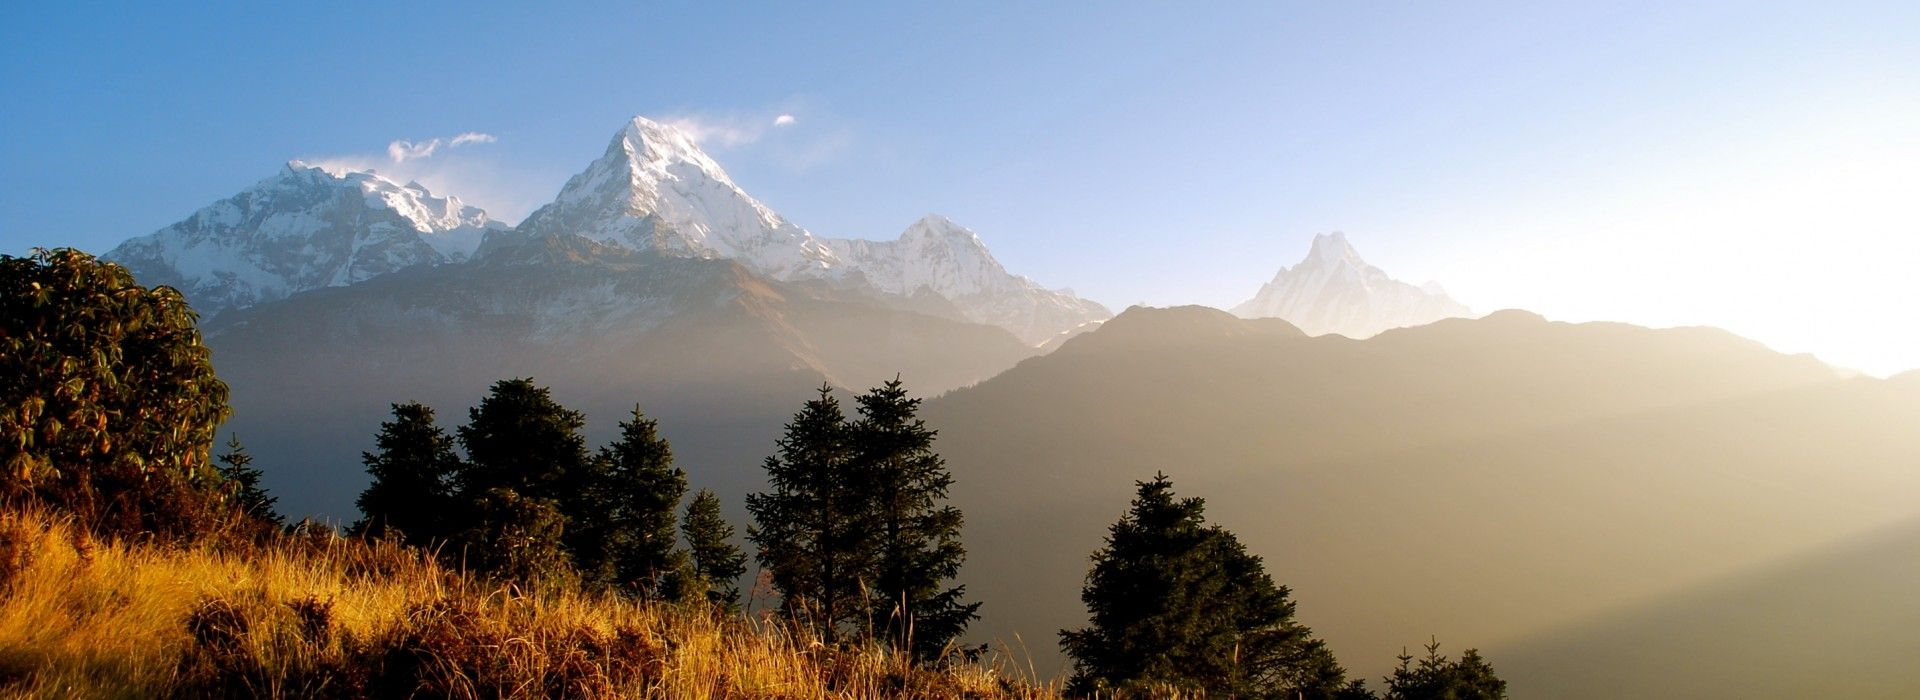 Cultural, religious and historic sites Tours in Annapurna Region